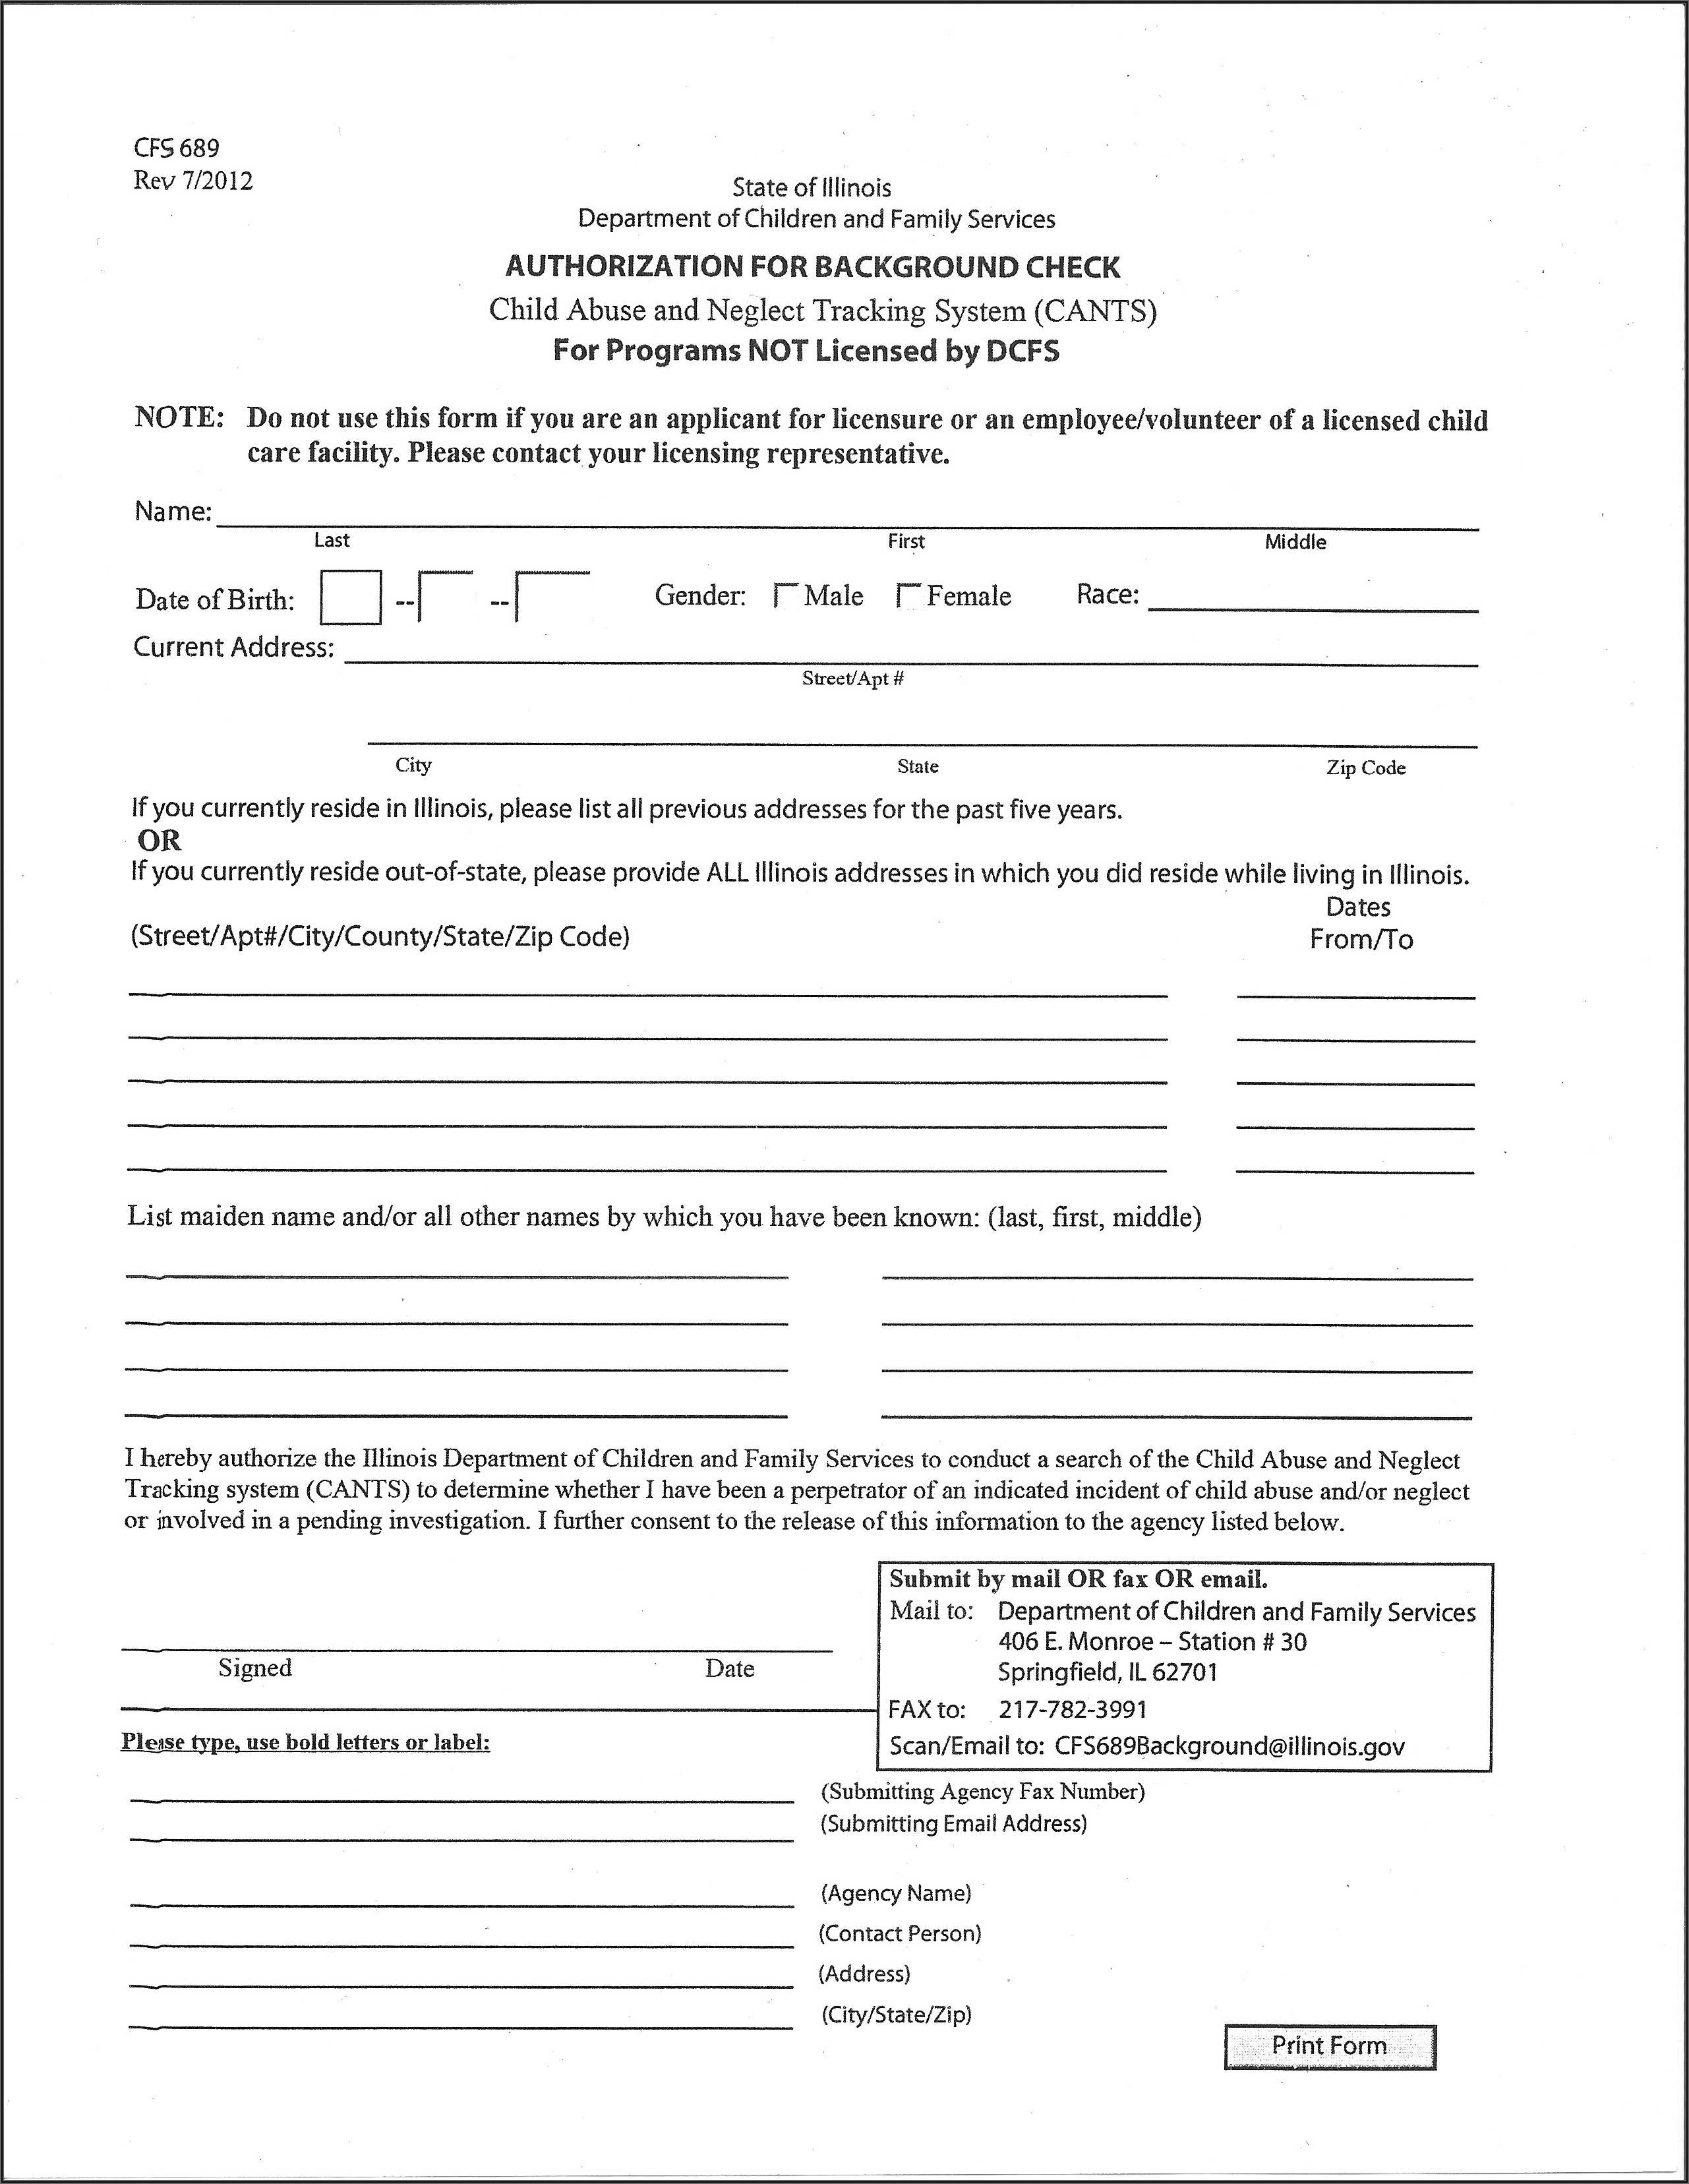 Criminal Background Check Authorization Form Illinois